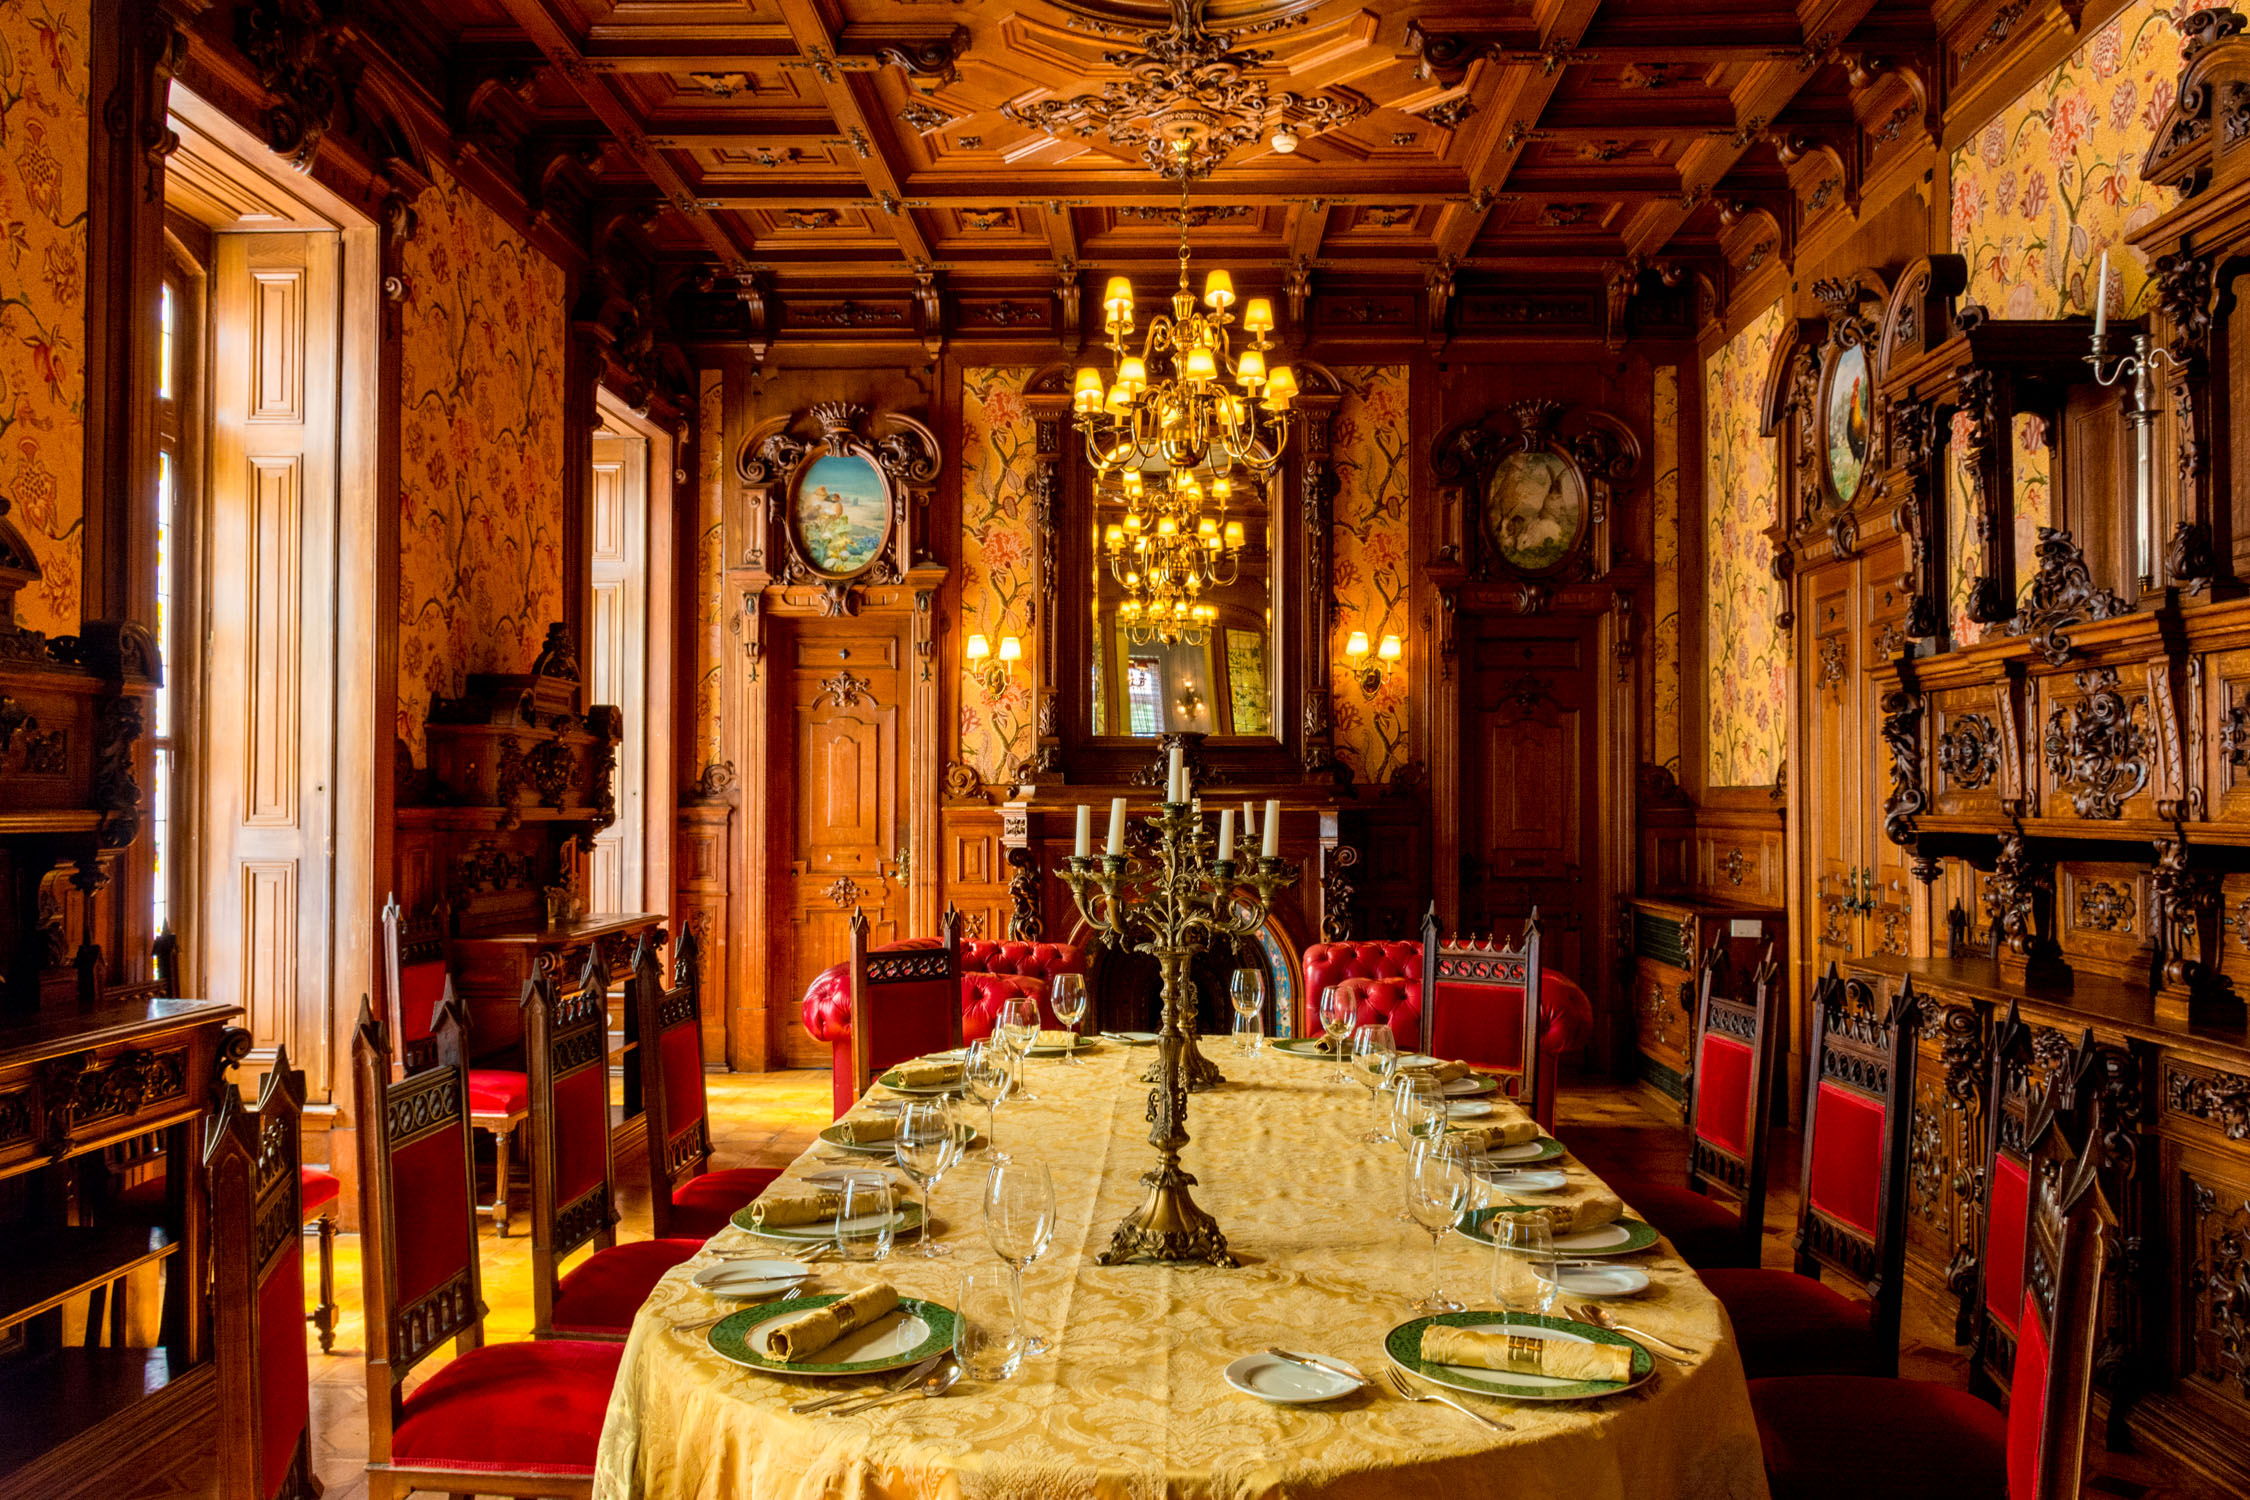 One of the private dining rooms inside the palace